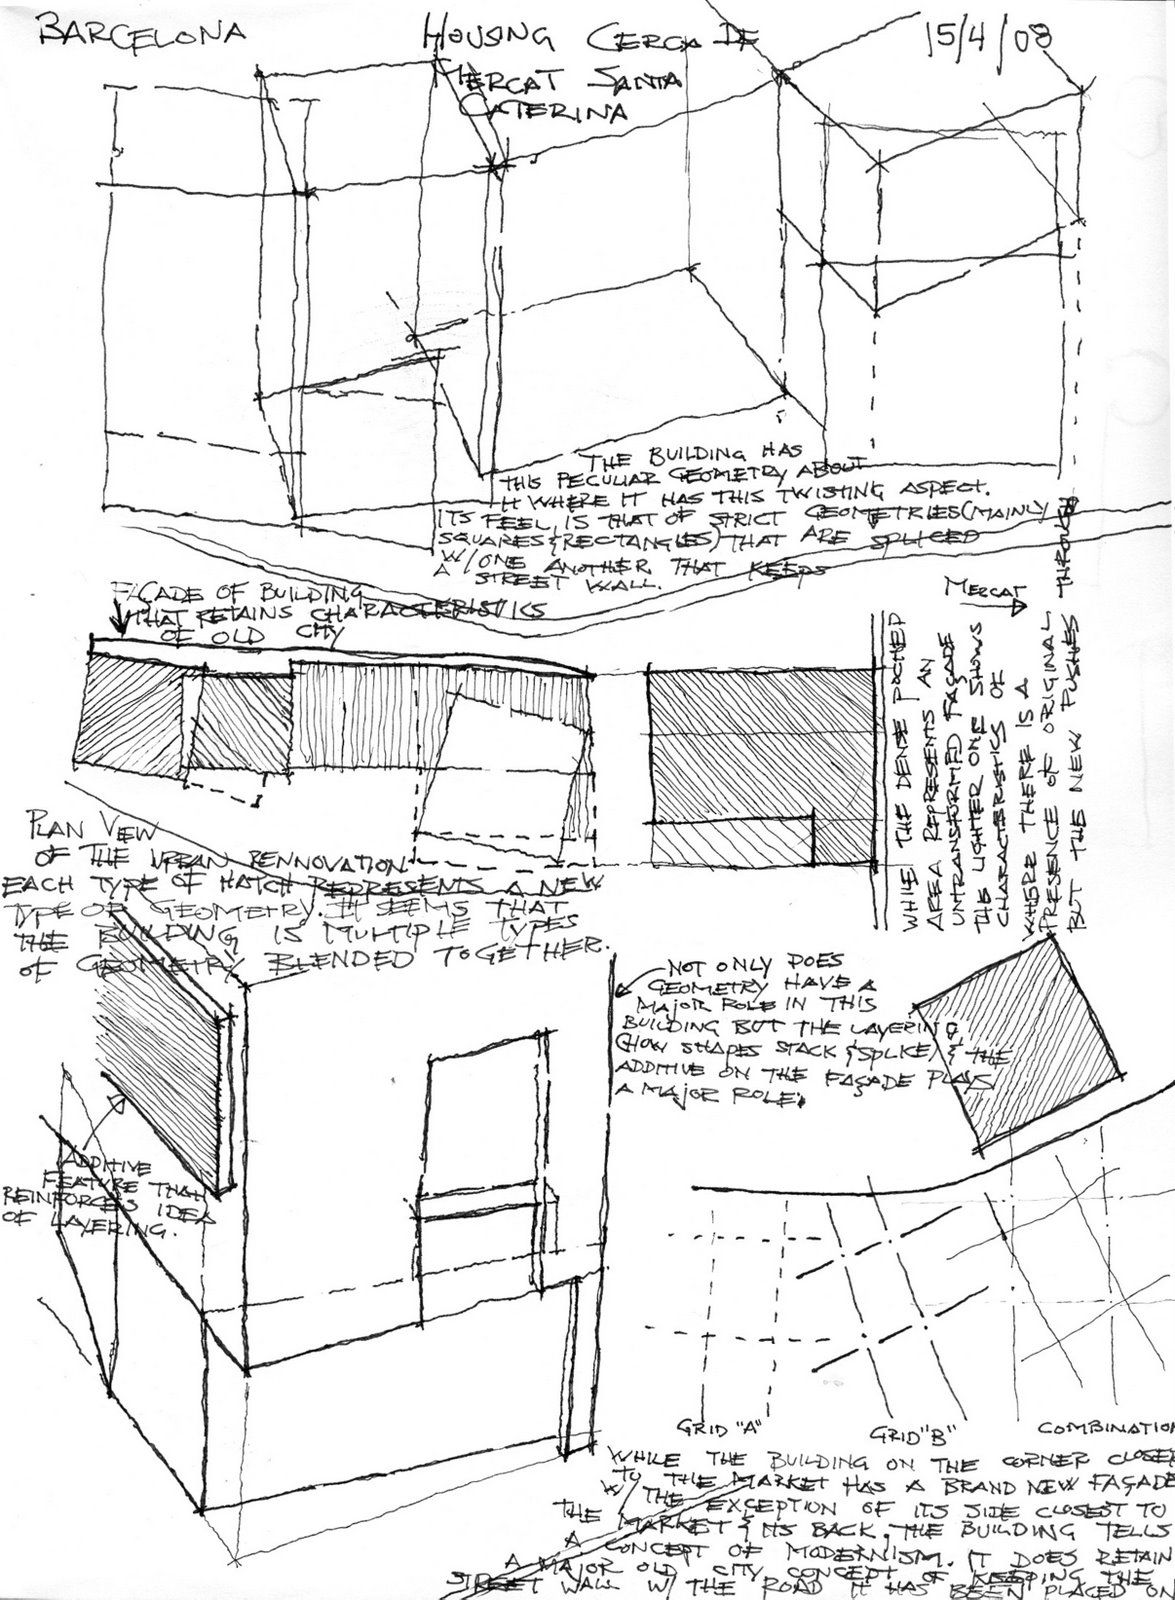 Architecture visual journal sketches. Showing a concept of